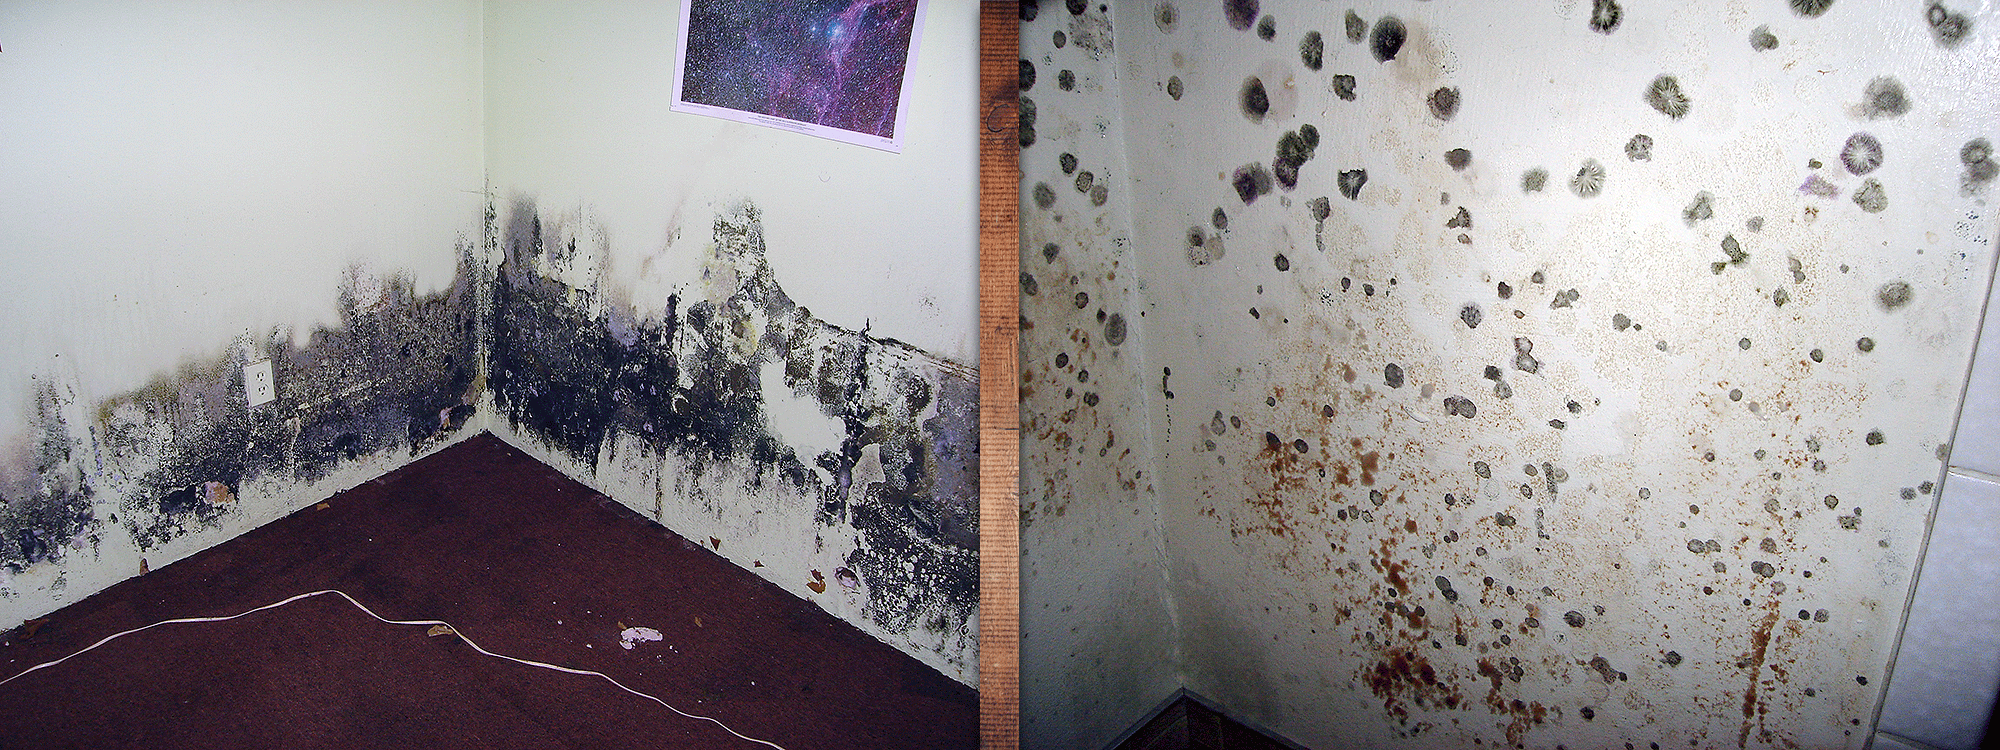 Two images of mold growing on walls